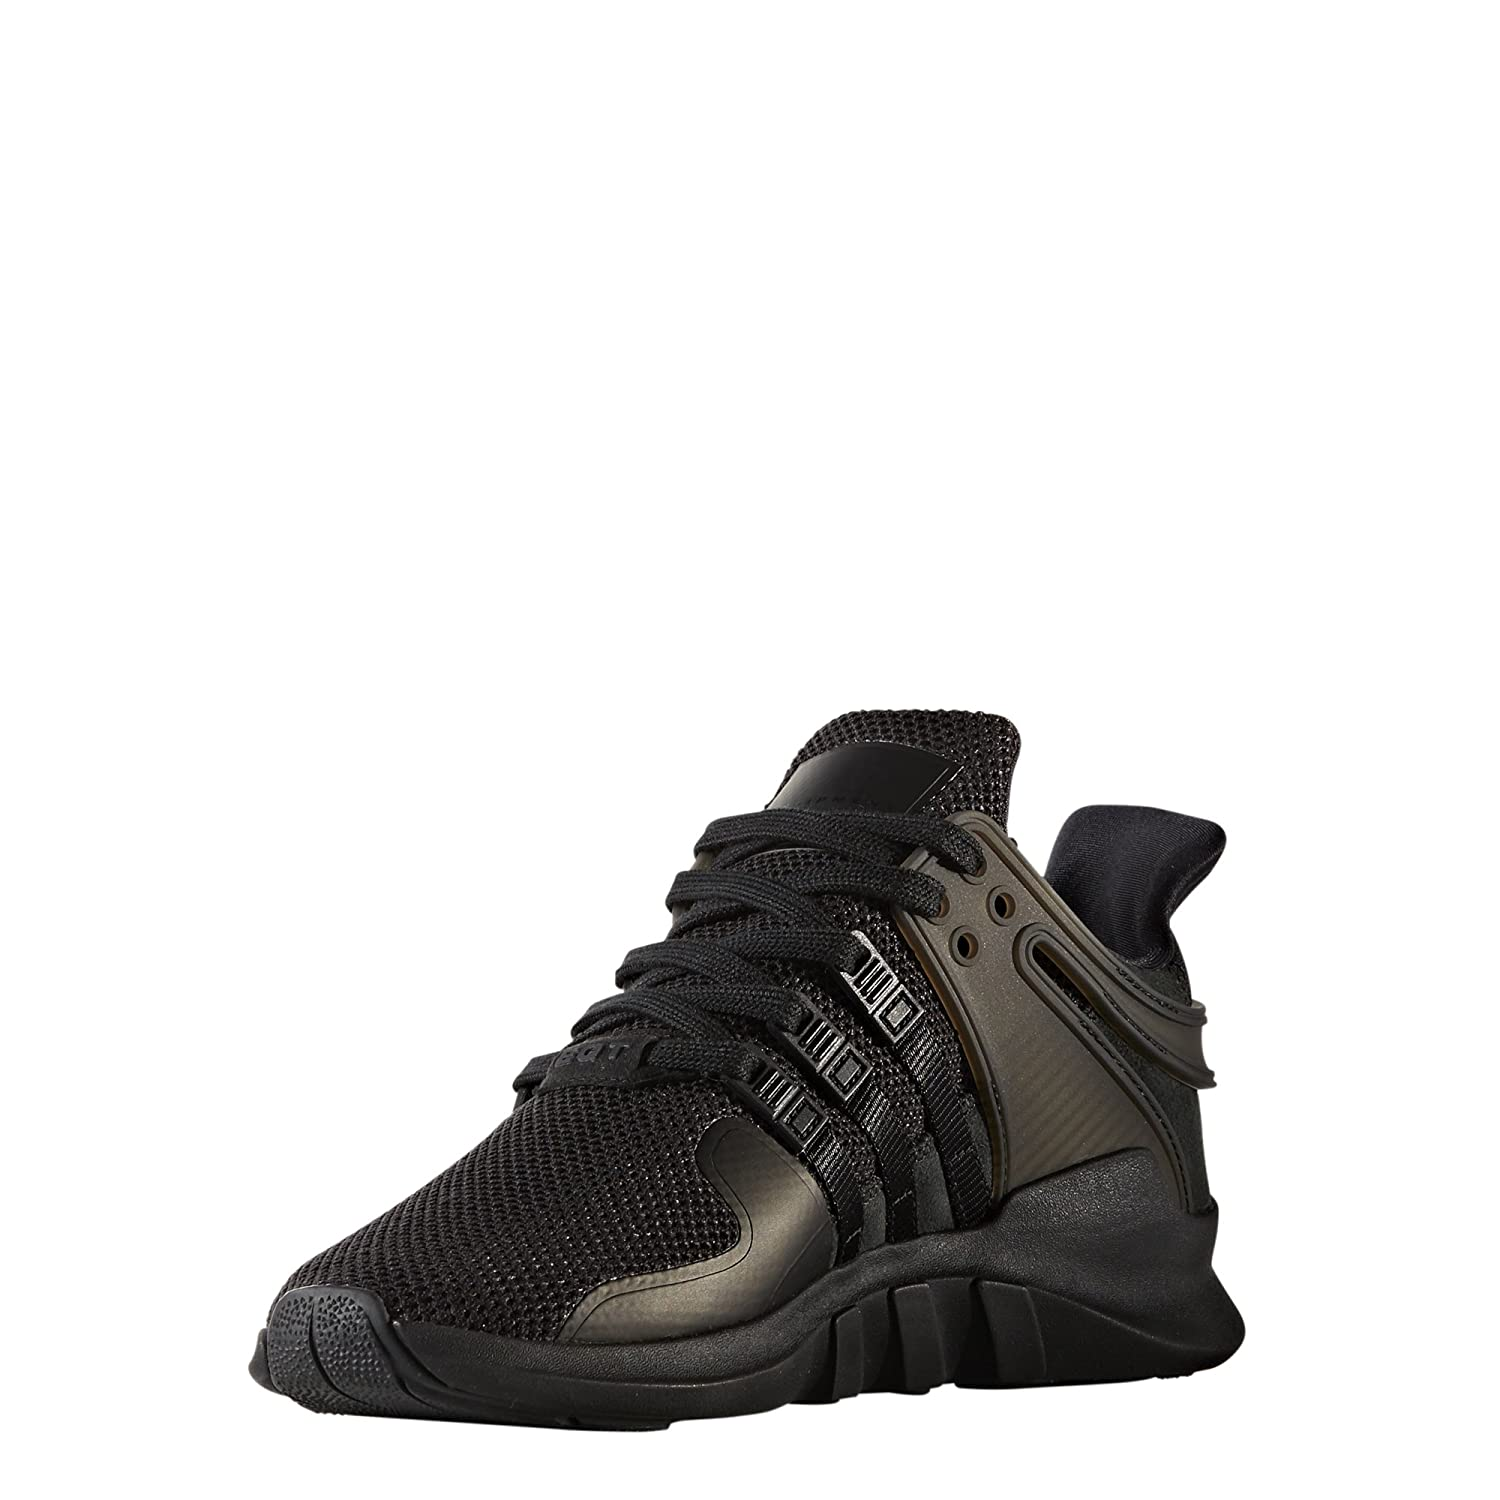 Adidas EQT Support ADV W W W - BY9110 ee6f68